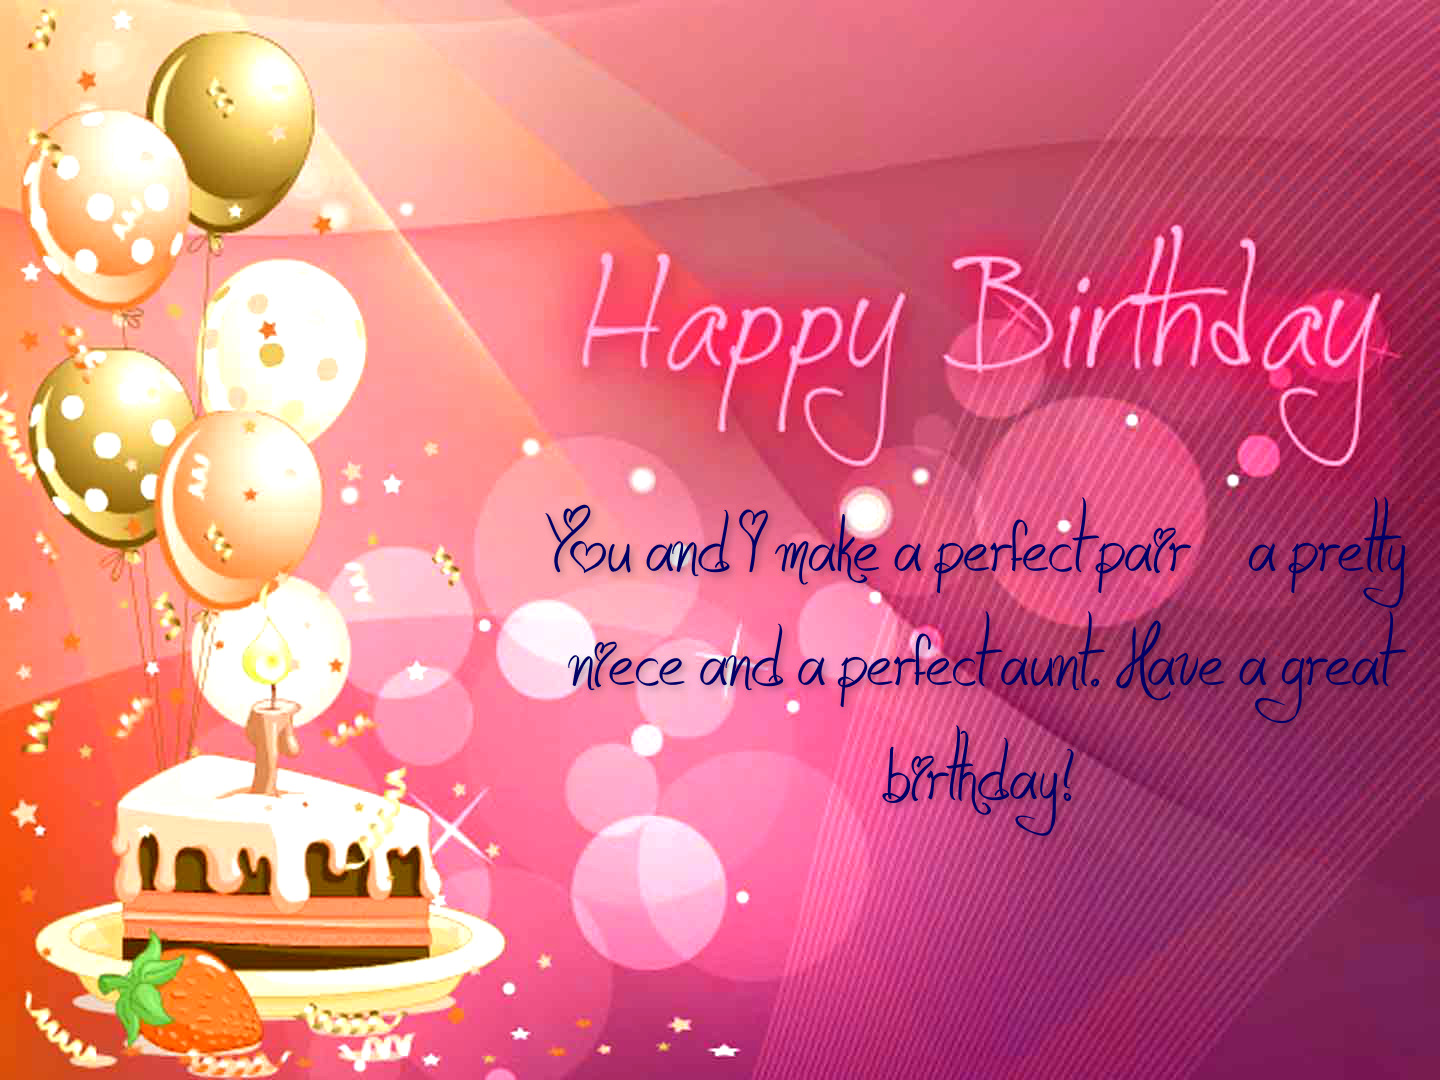 birthday greetings message for auntie ; Happy-Birthday-Aunt-4